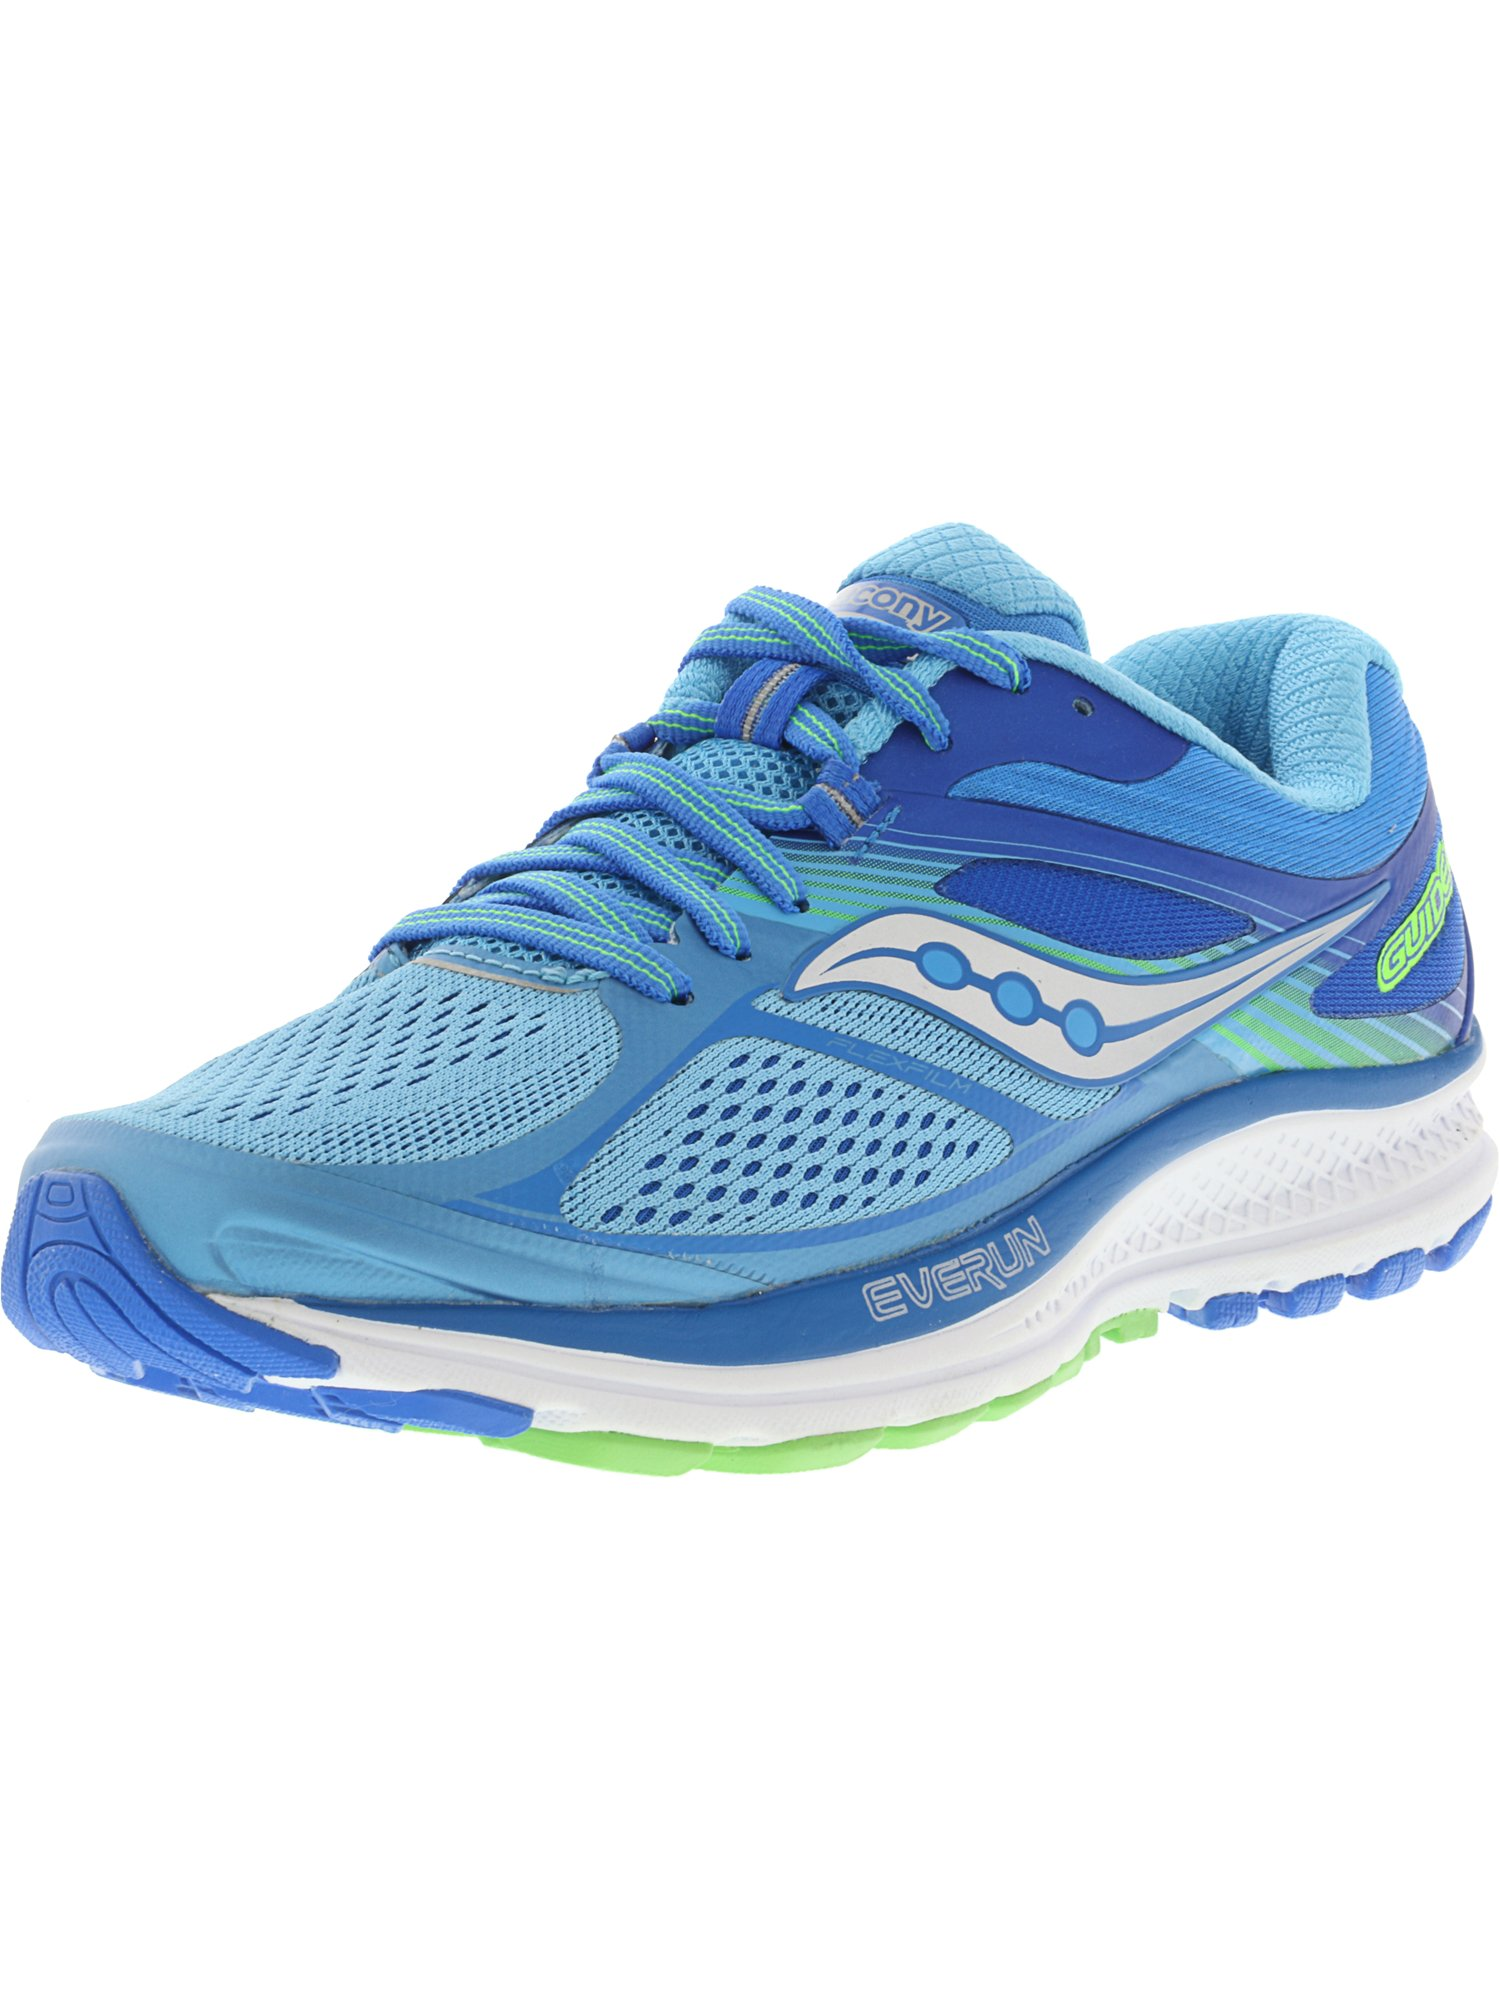 Saucony Women Guide 10 Running Shoes by Saucony